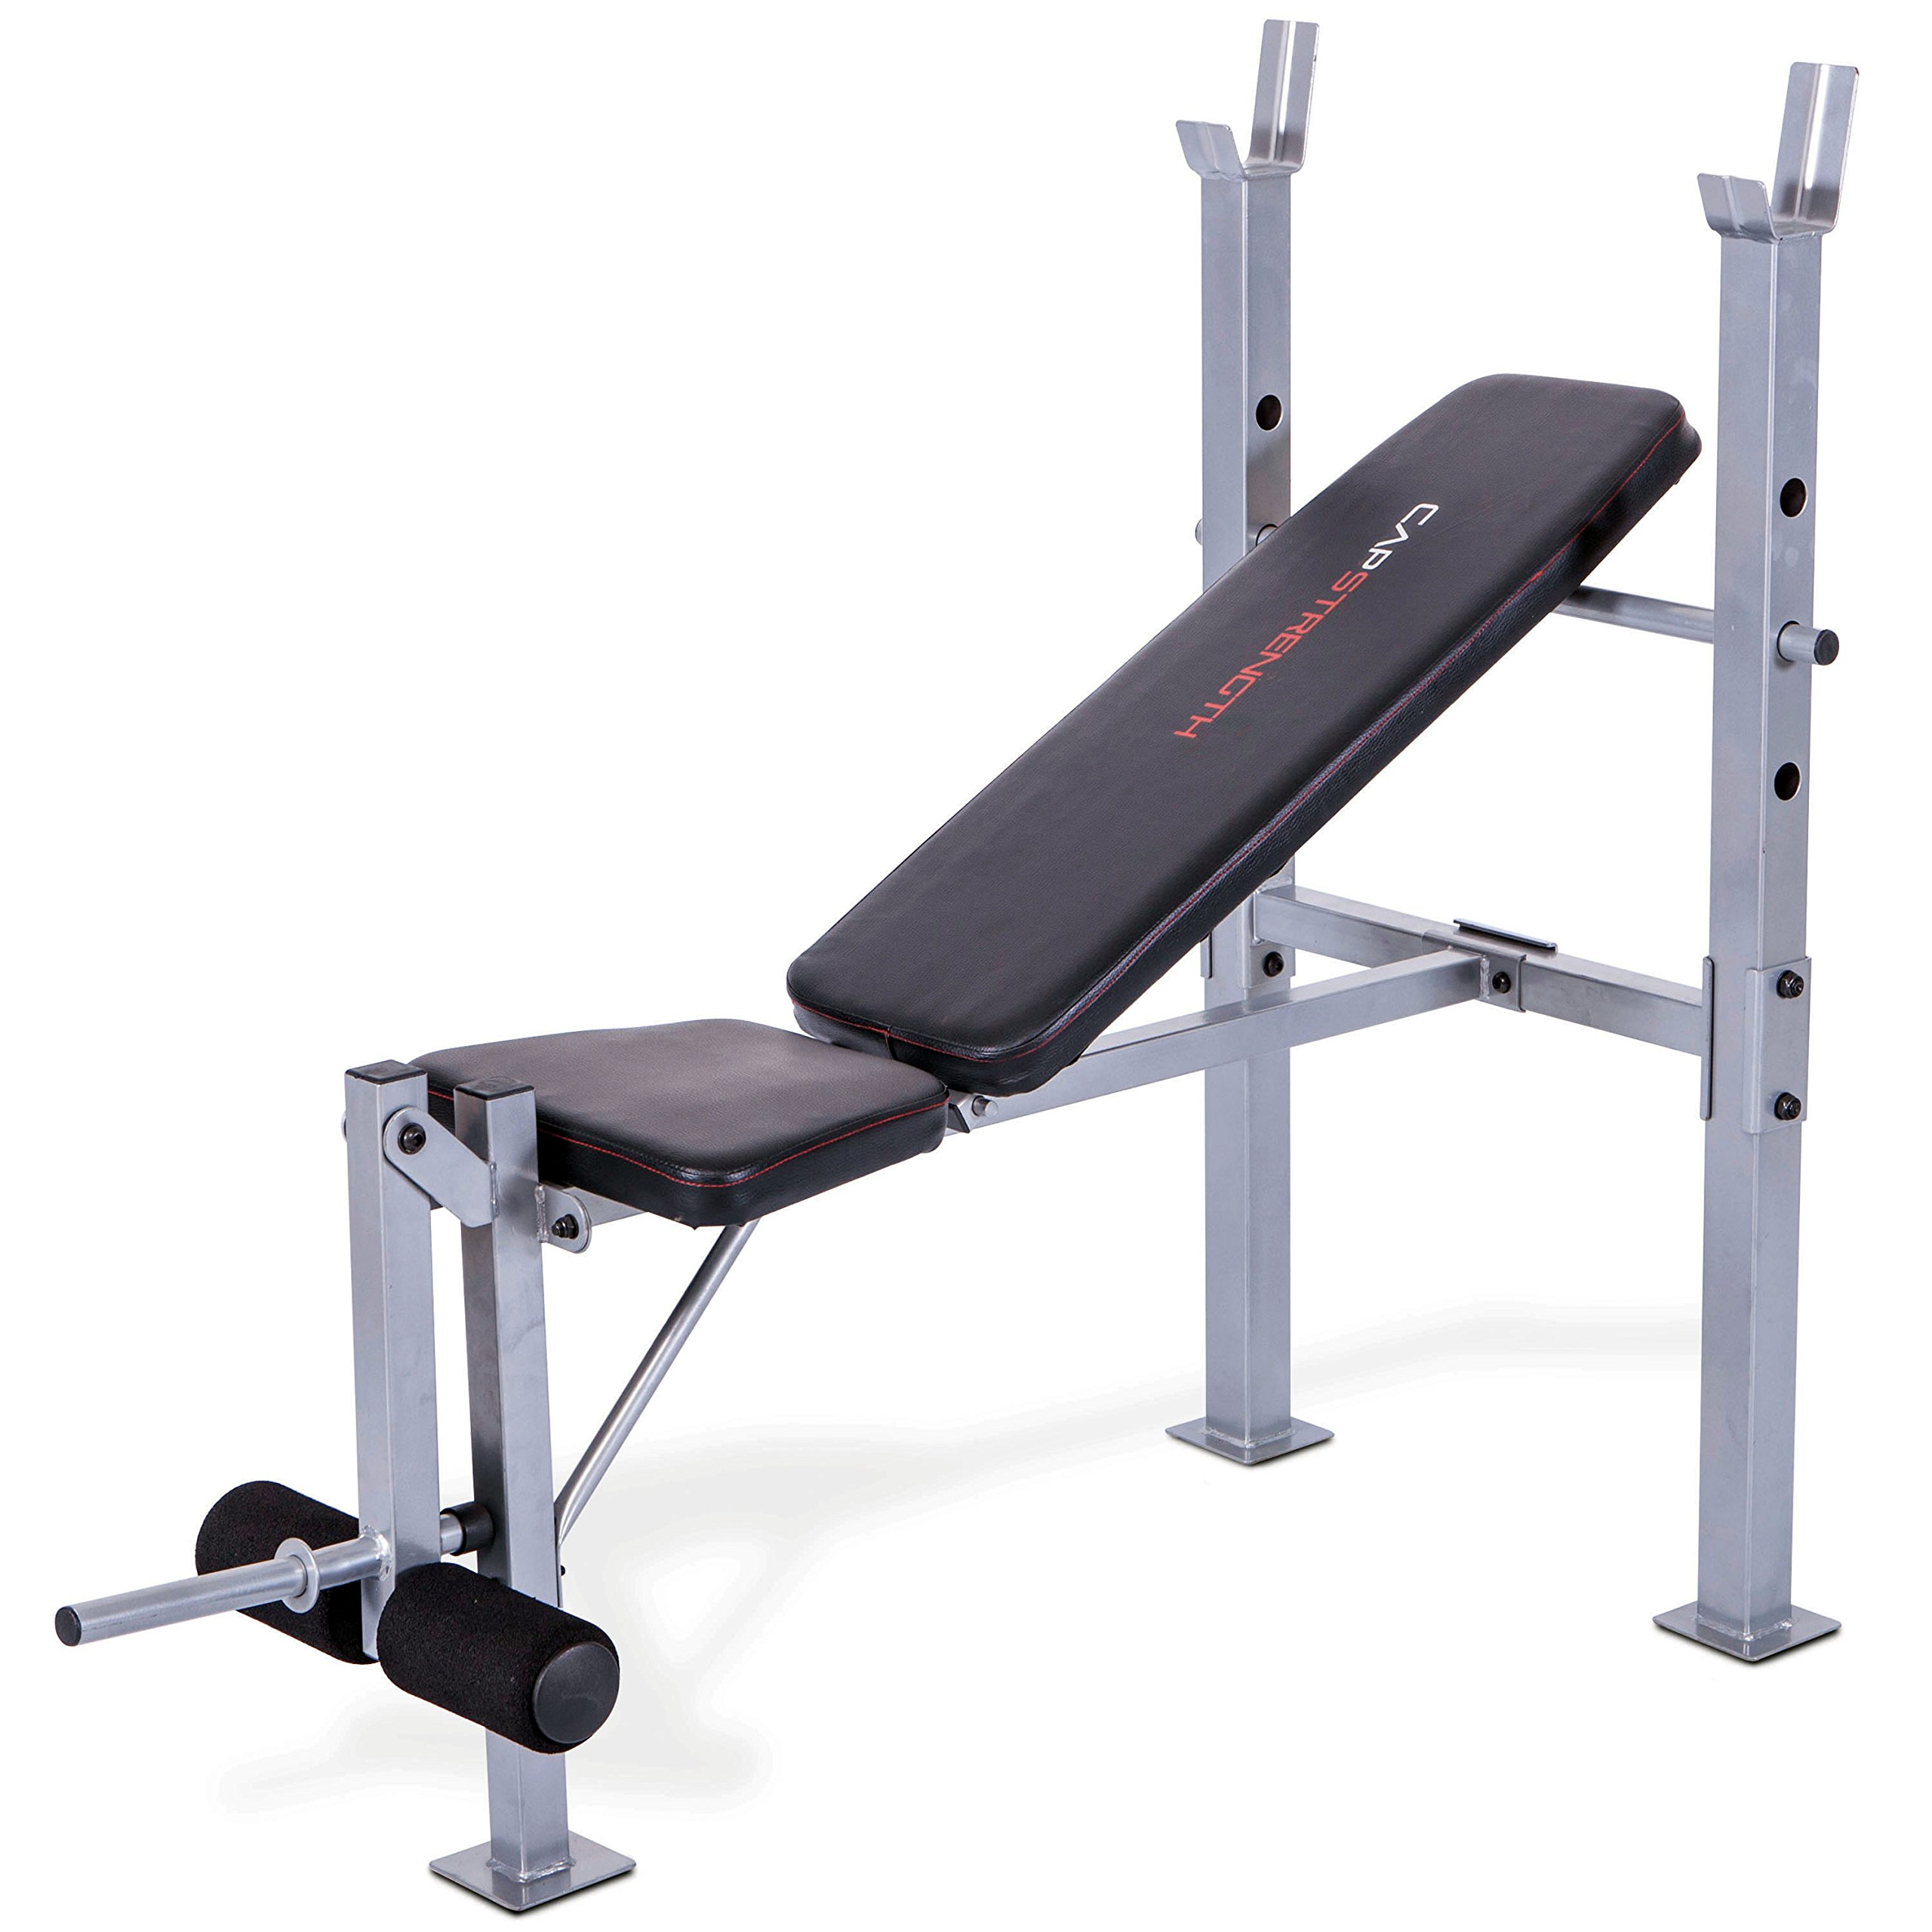 CAP Barbell FM-CS7230 Cap Strength Standard Weight Bench with Leg Developer